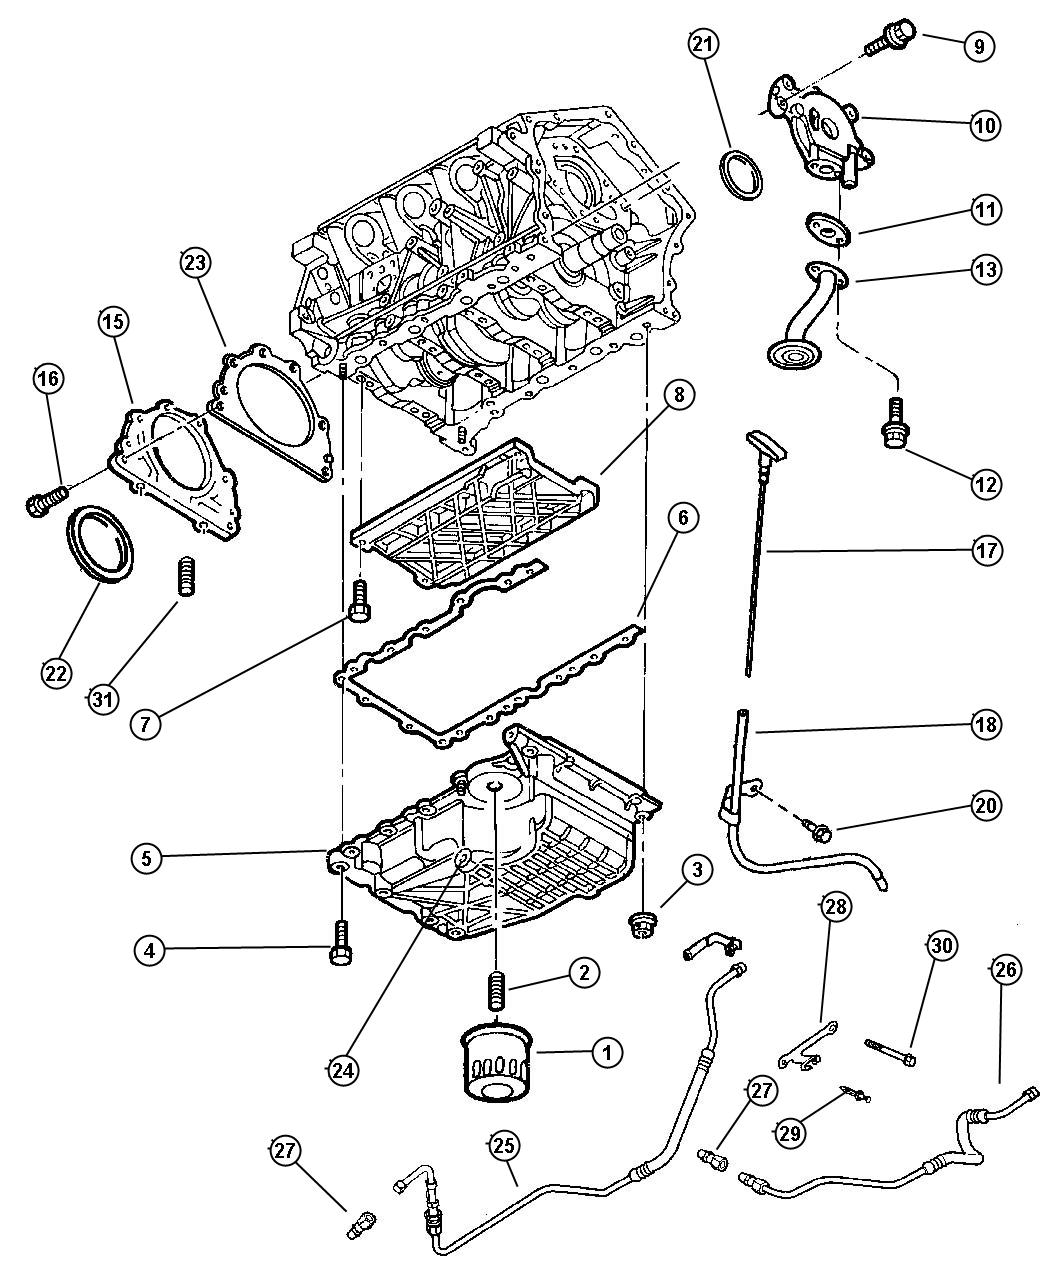 Dodge 2 7 Engine Diagram Wiring Library For 1999 Intrepid 2carpros Questions Get Free